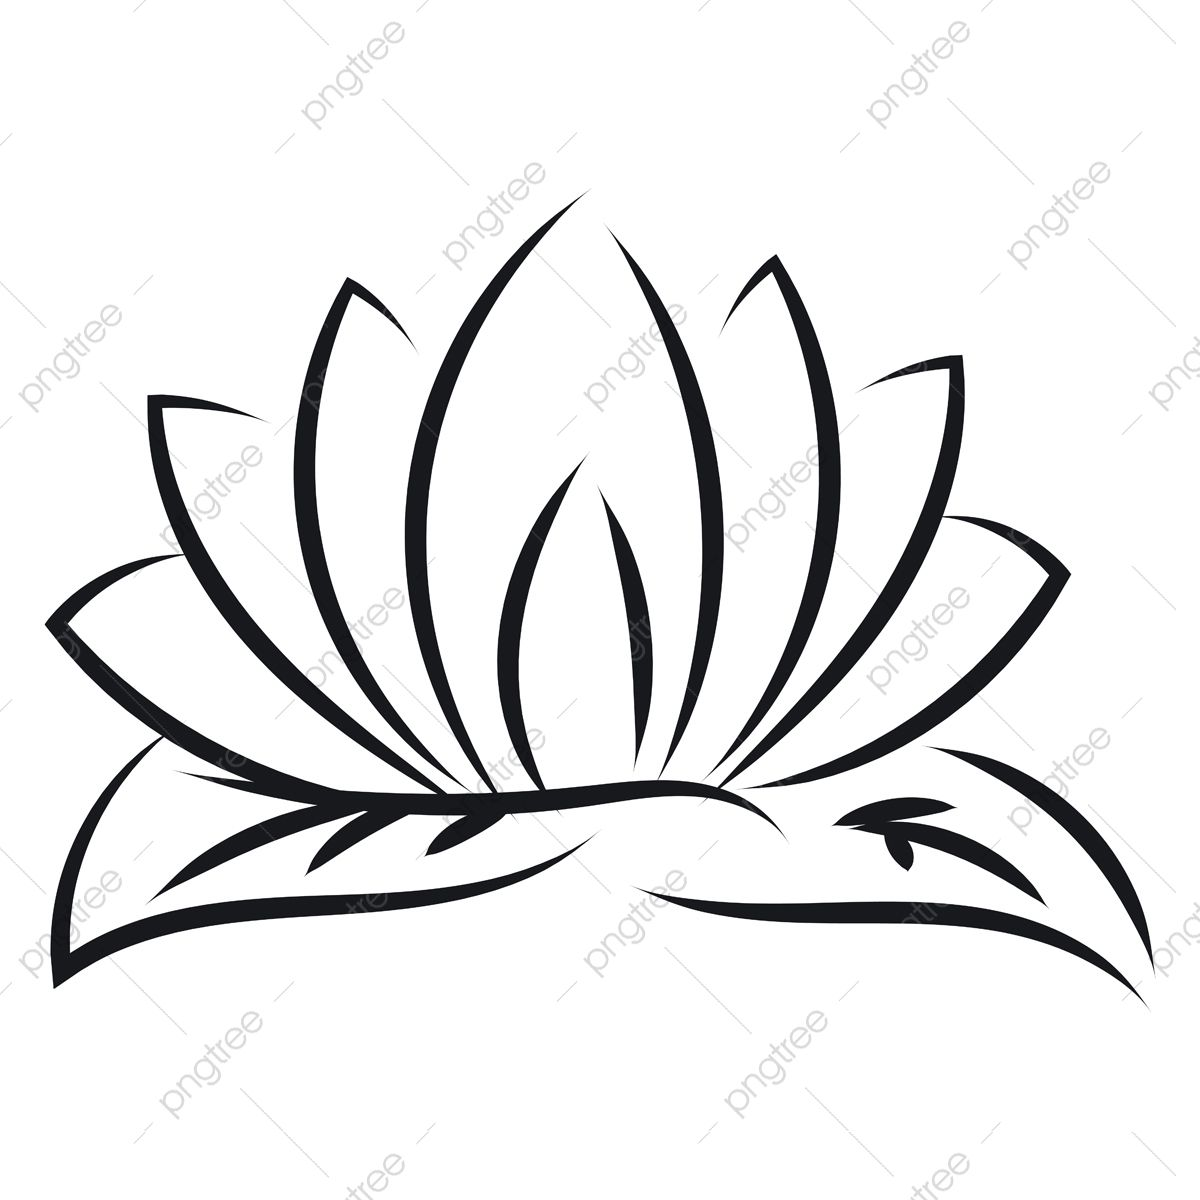 Black Outlines Of Lotus Vector Illustration On White Background Lotus Flower Sketch Png And Vector With Transparent Background For Free Download Lotus Vector Vector Illustration White Background